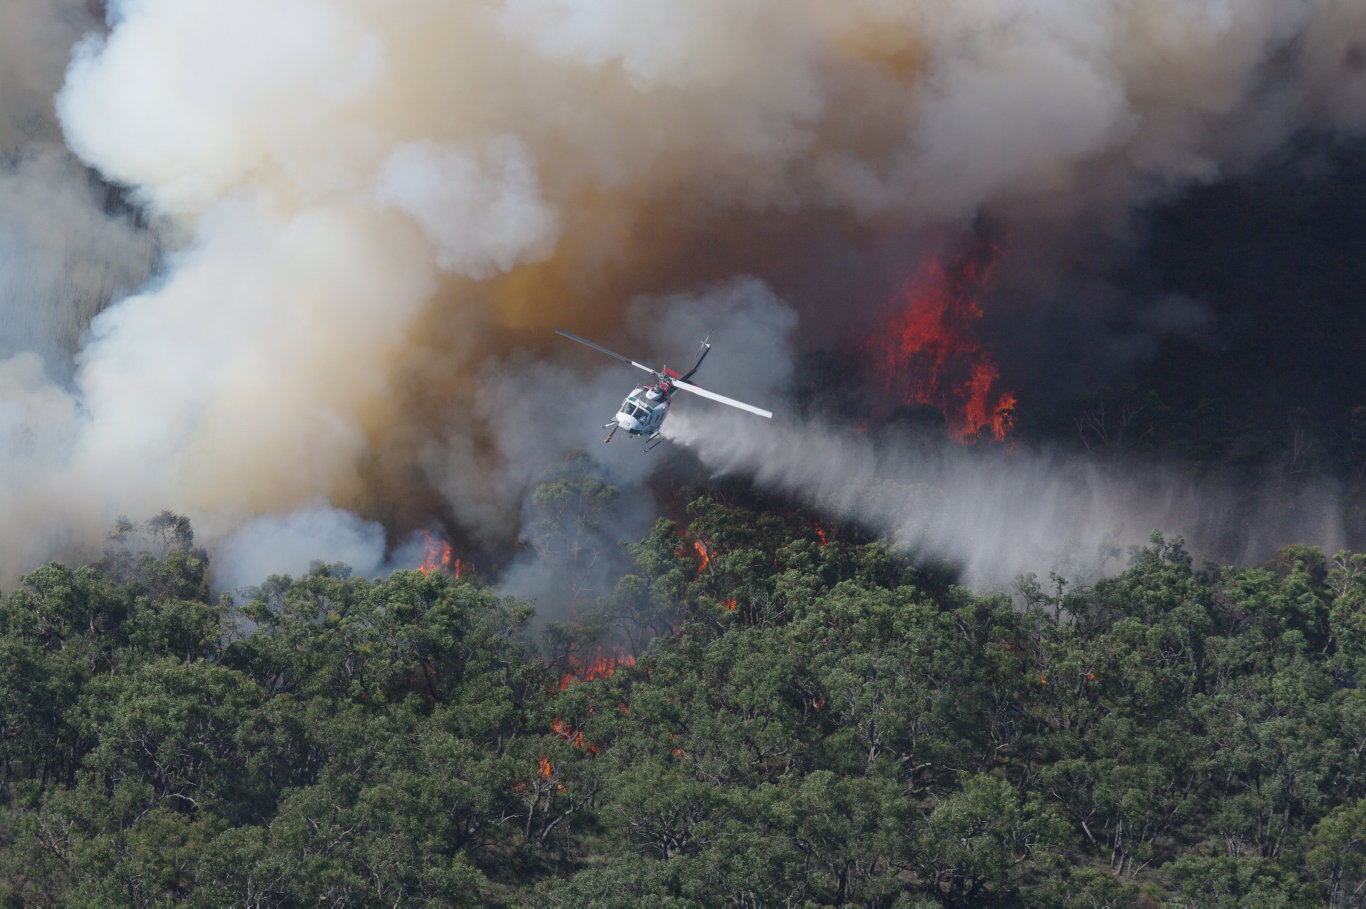 A photo of an aerial water bomber fighting the Black Saturday fires in 2009.